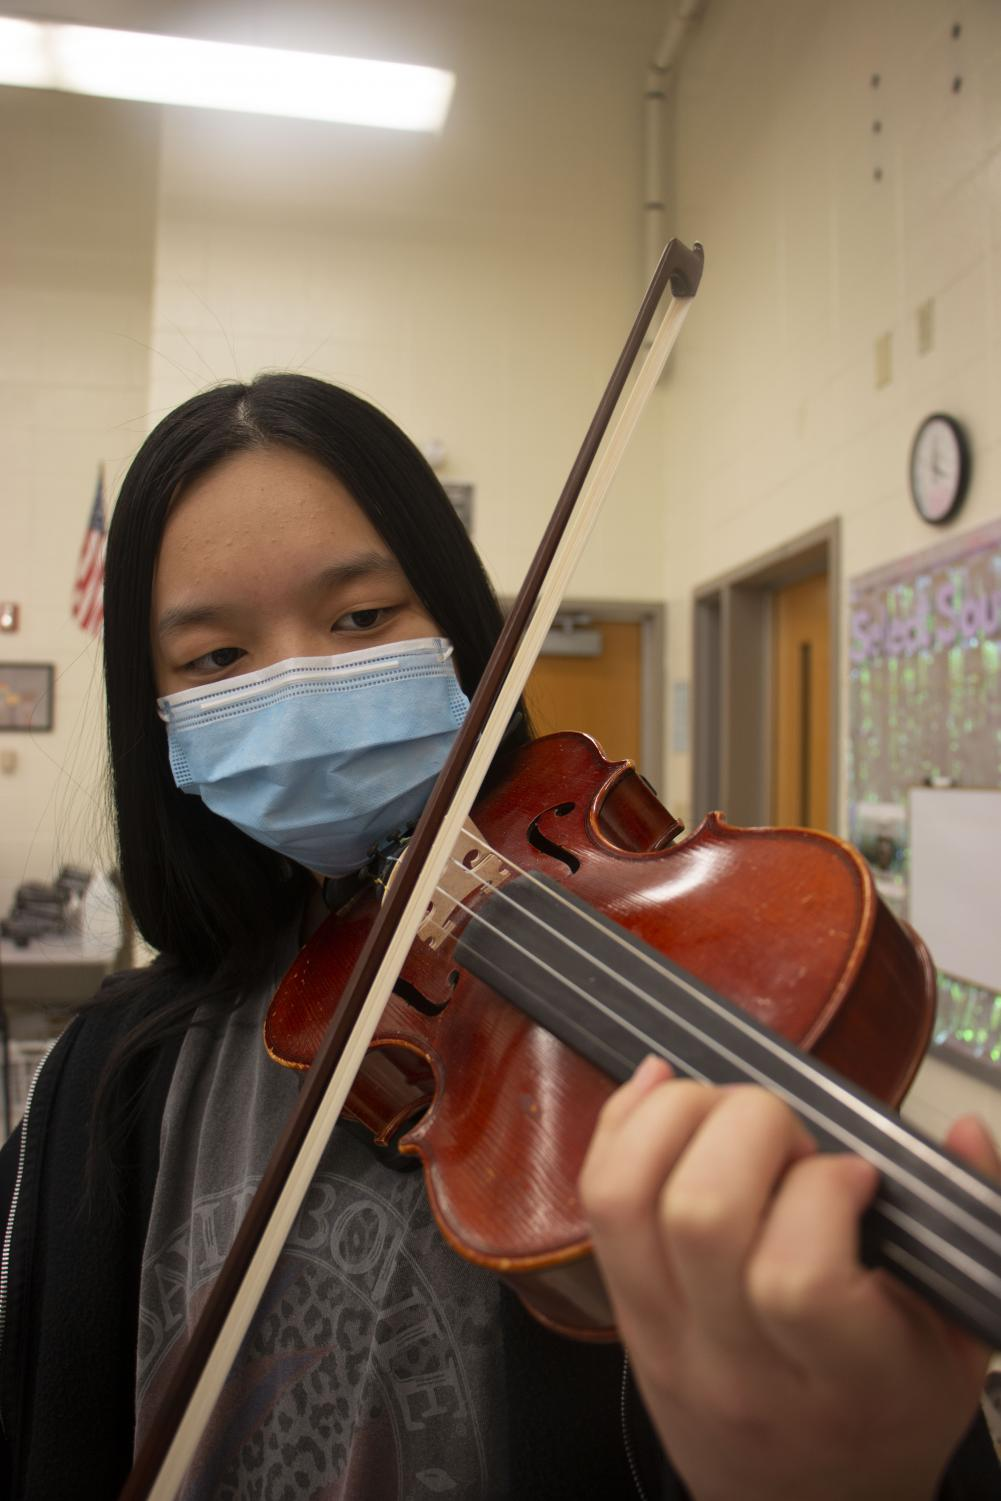 Freshman Carolyn Jia plays her instrument in preparation for ISSMA. She practices independently, in private lessons and in Concert Orchestra so she can perform well in ISSMA, even though it is virtual this year.